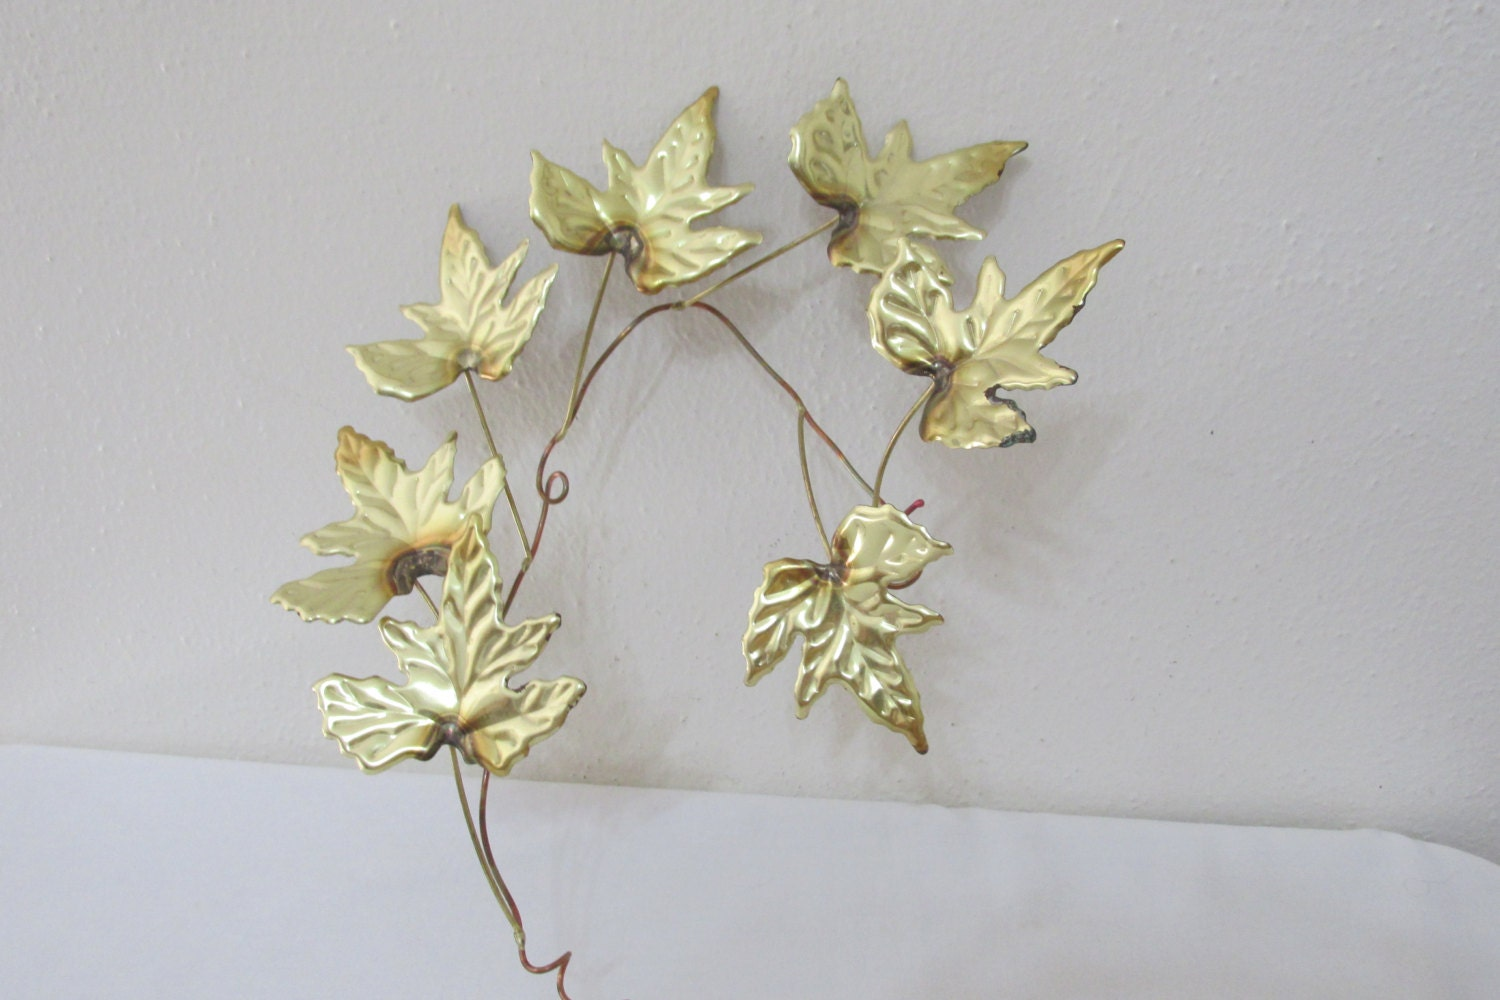 Metal leaf stem wall decor set of 8 for Metal leaf wall art